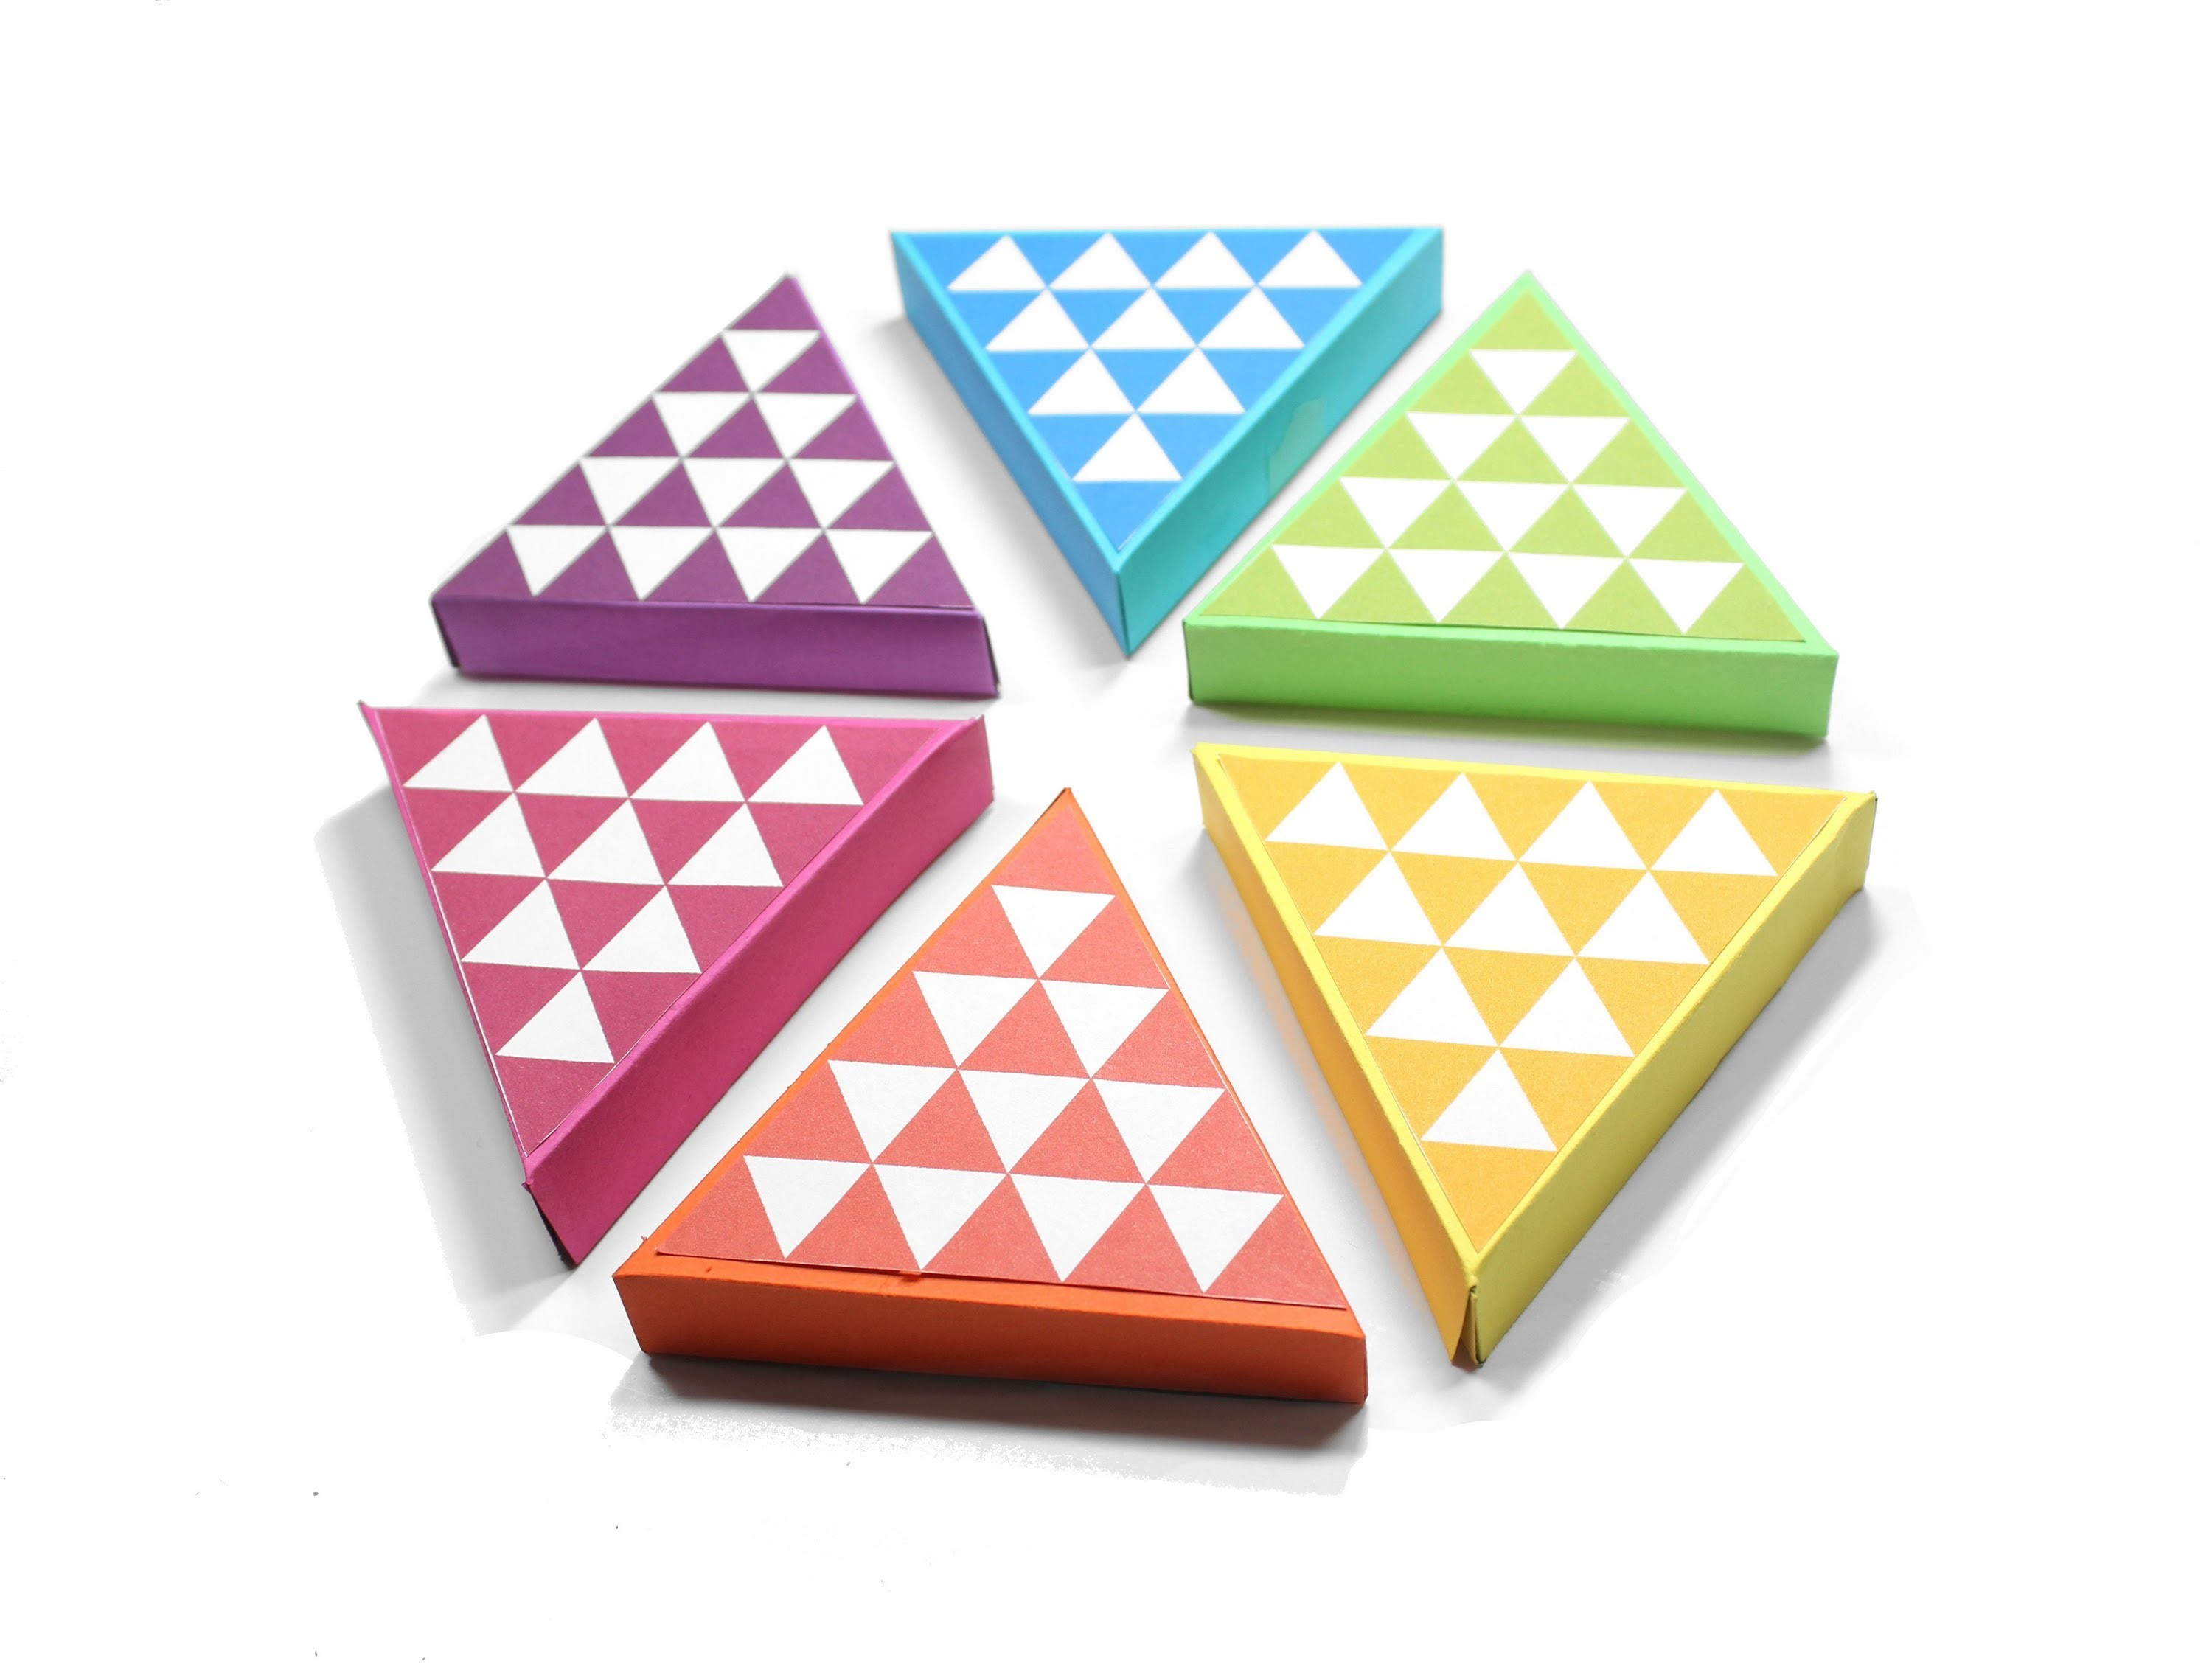 Diy Geometric Gift Boxes (Easy With Free Printable Template) - Free Printable Gift Boxes